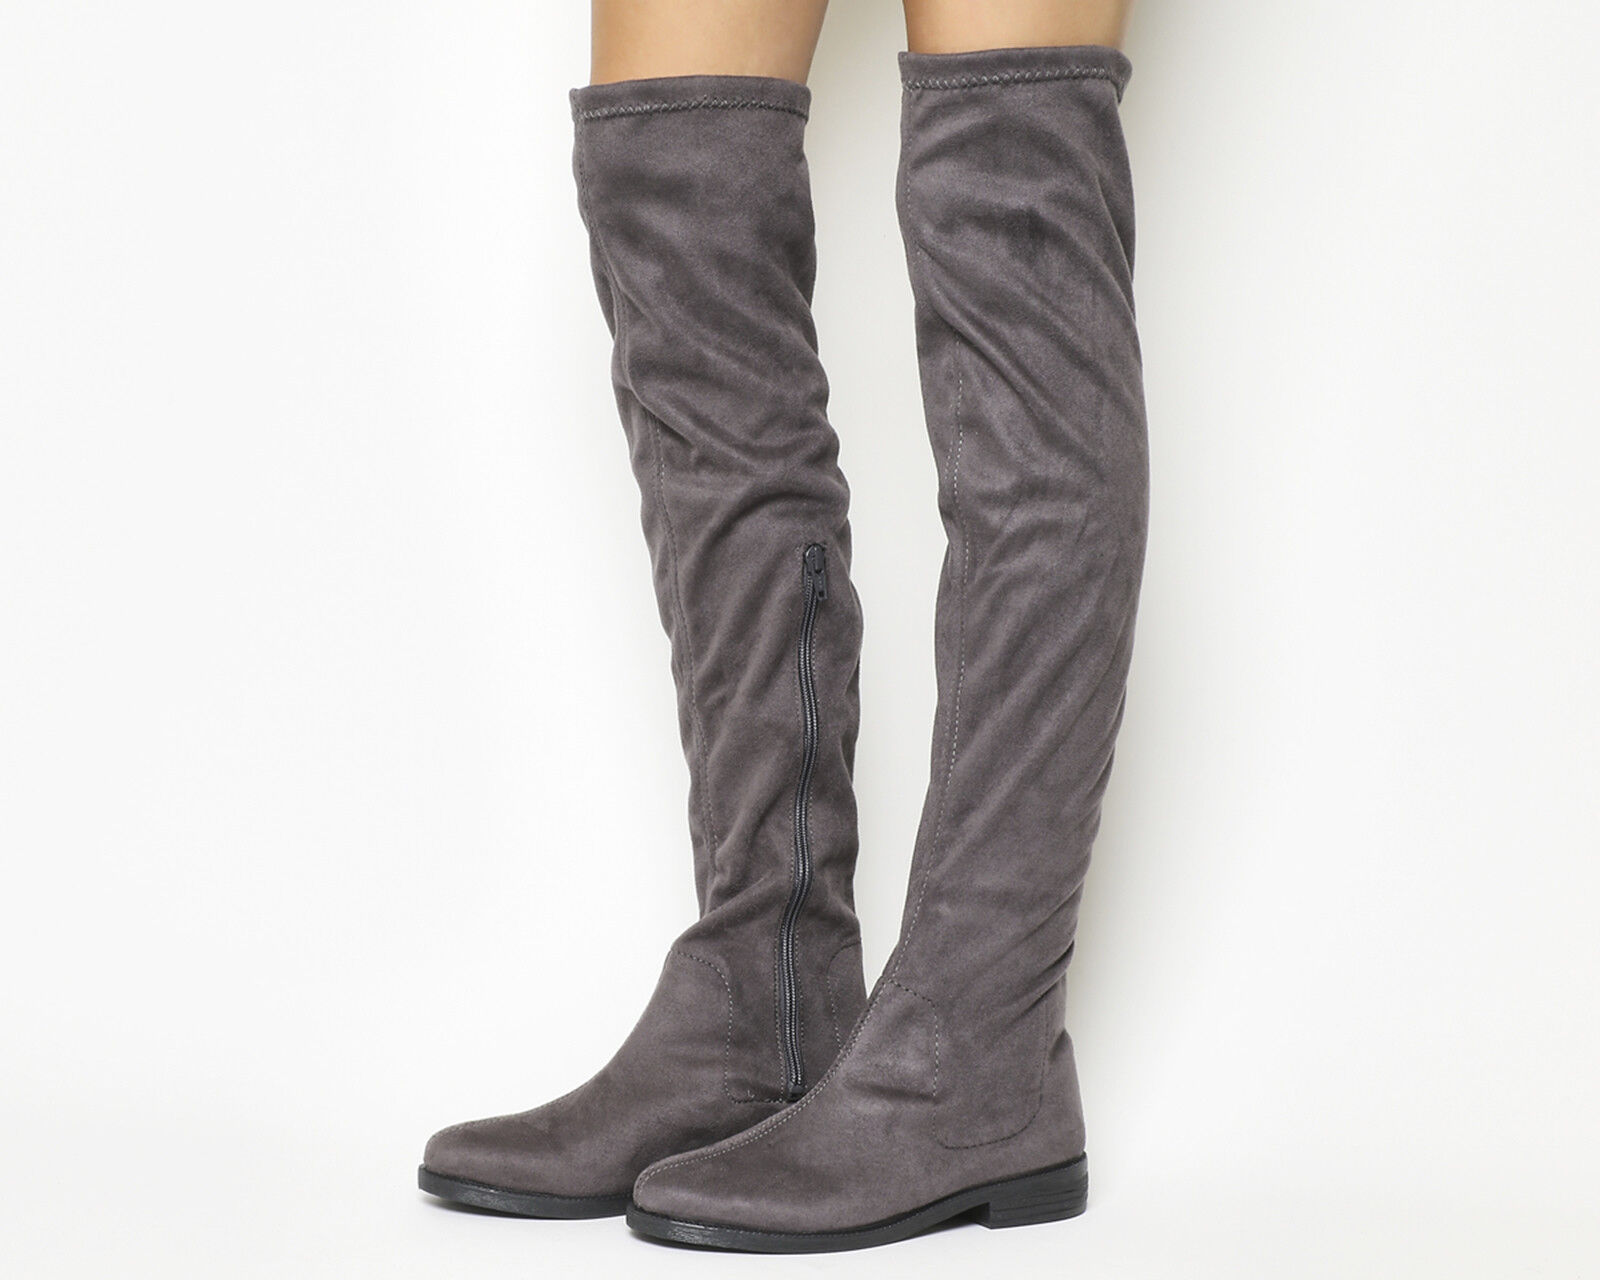 Damenschuhe Office Kung Fu Over The Knee Stiefel GREY Stiefel